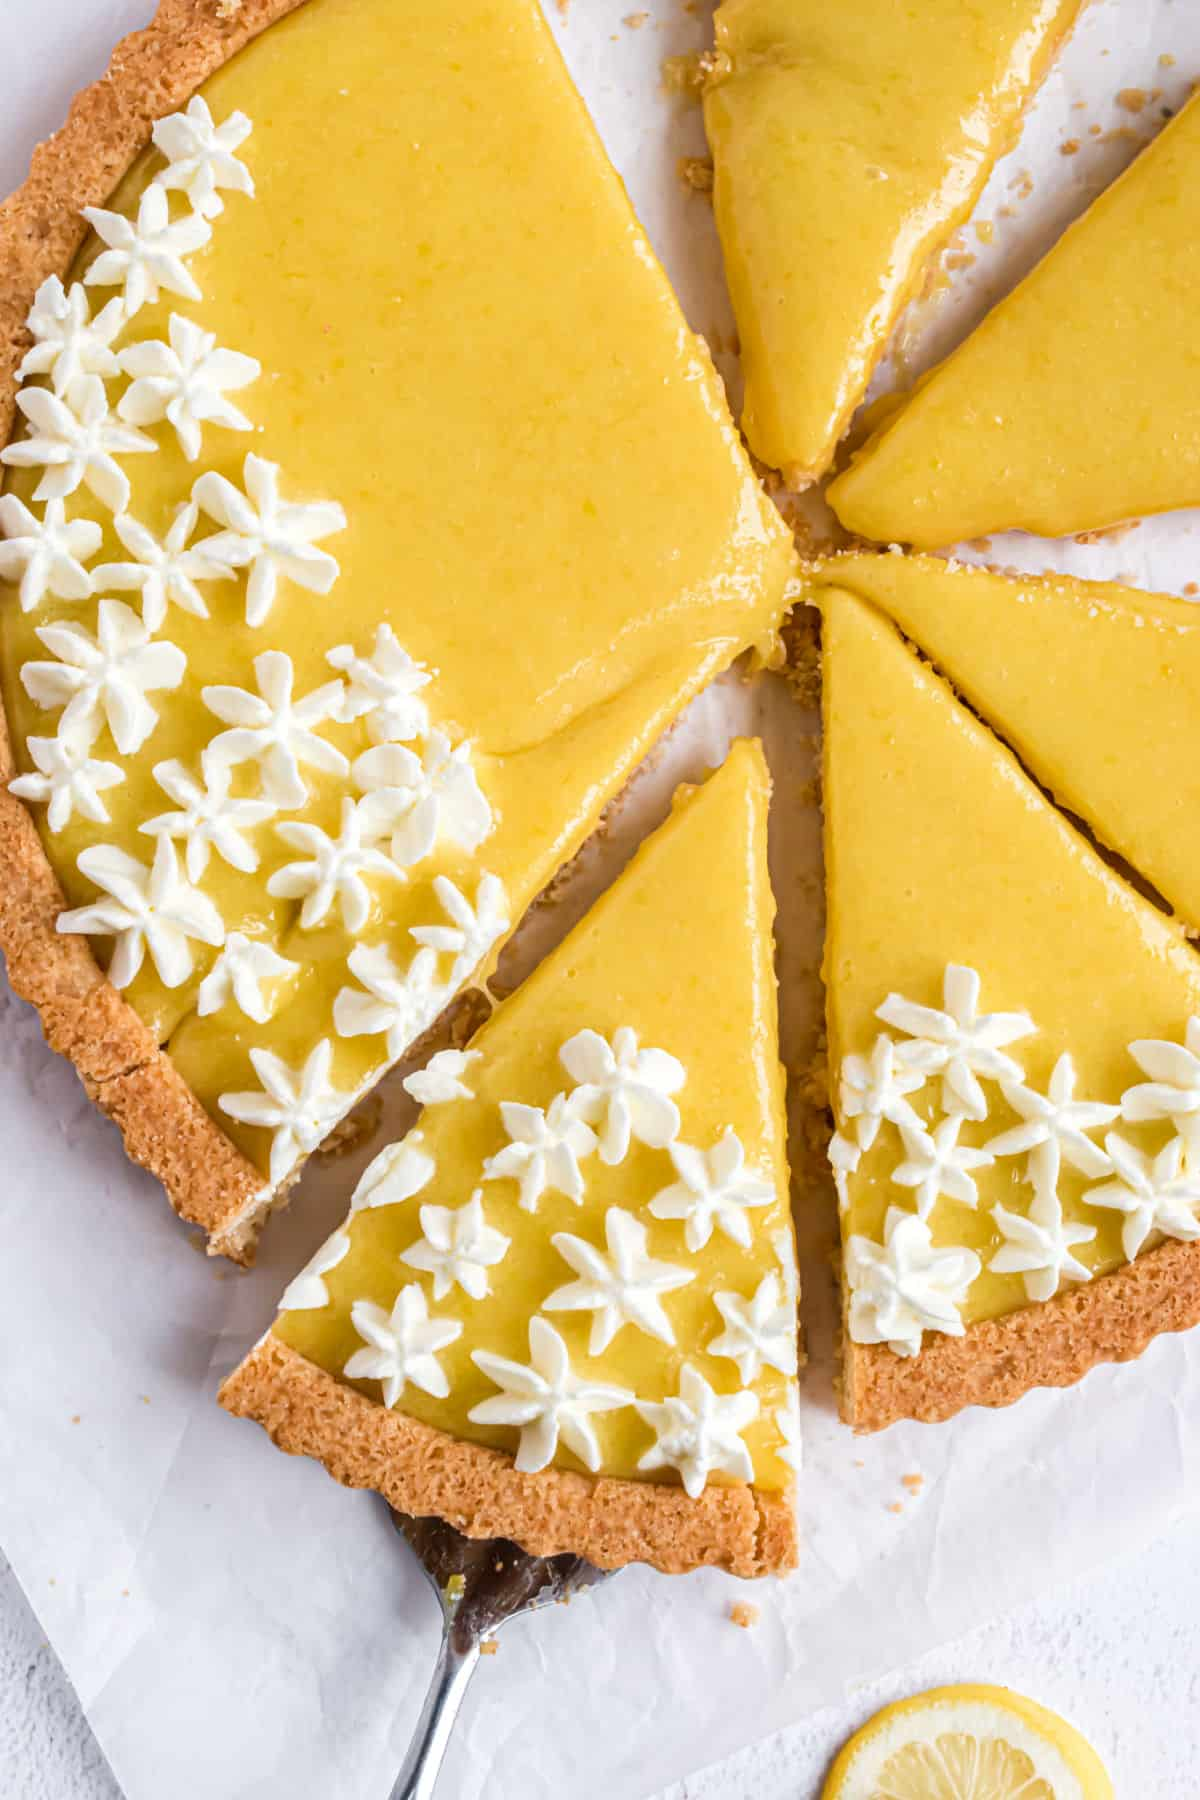 Lemon tart with whipped cream, sliced into triangles.